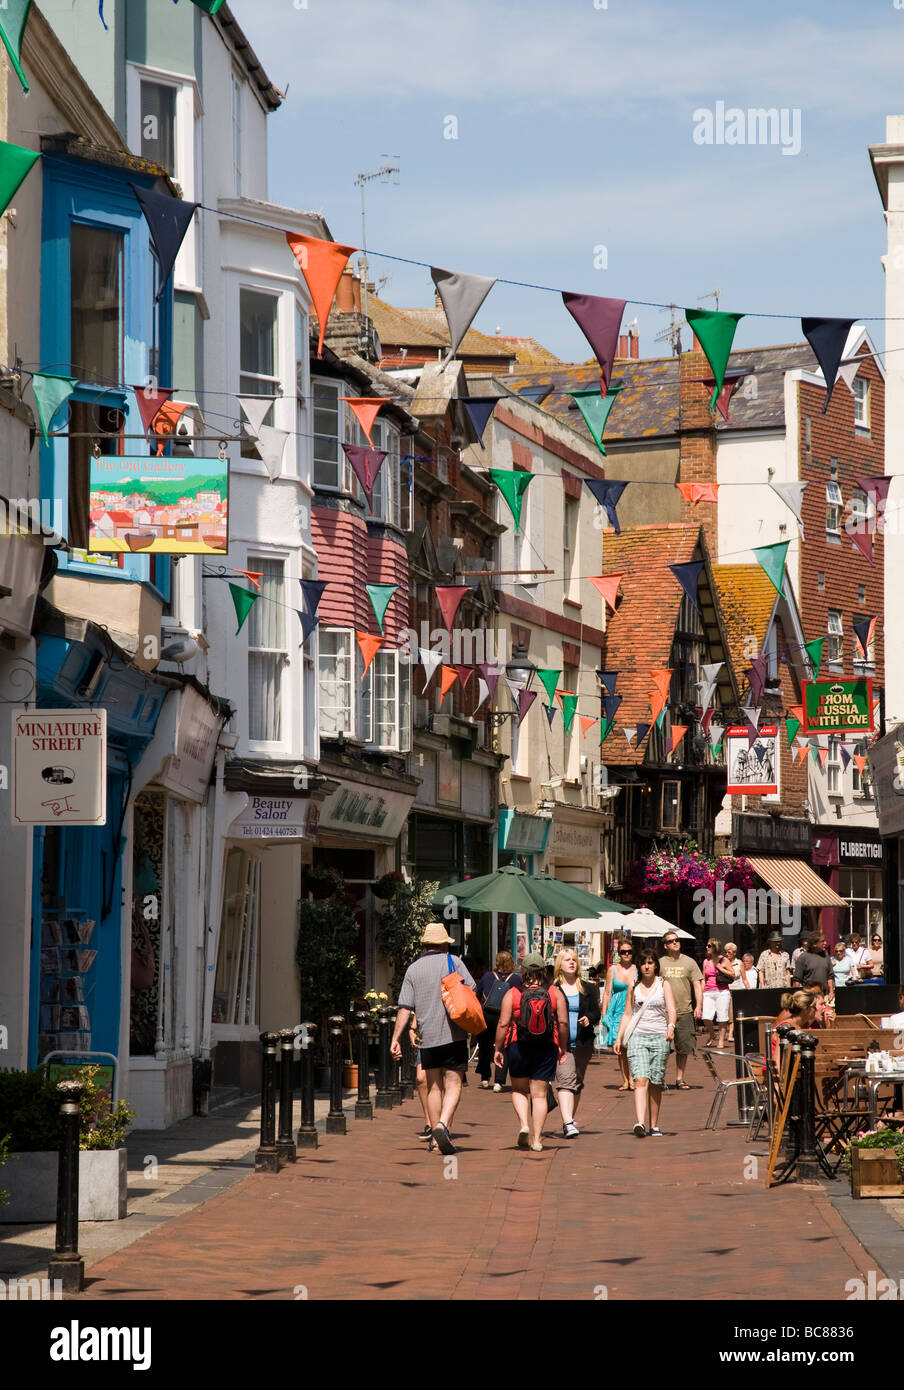 Hastings Old Town in Sussex, England. - Stock Image